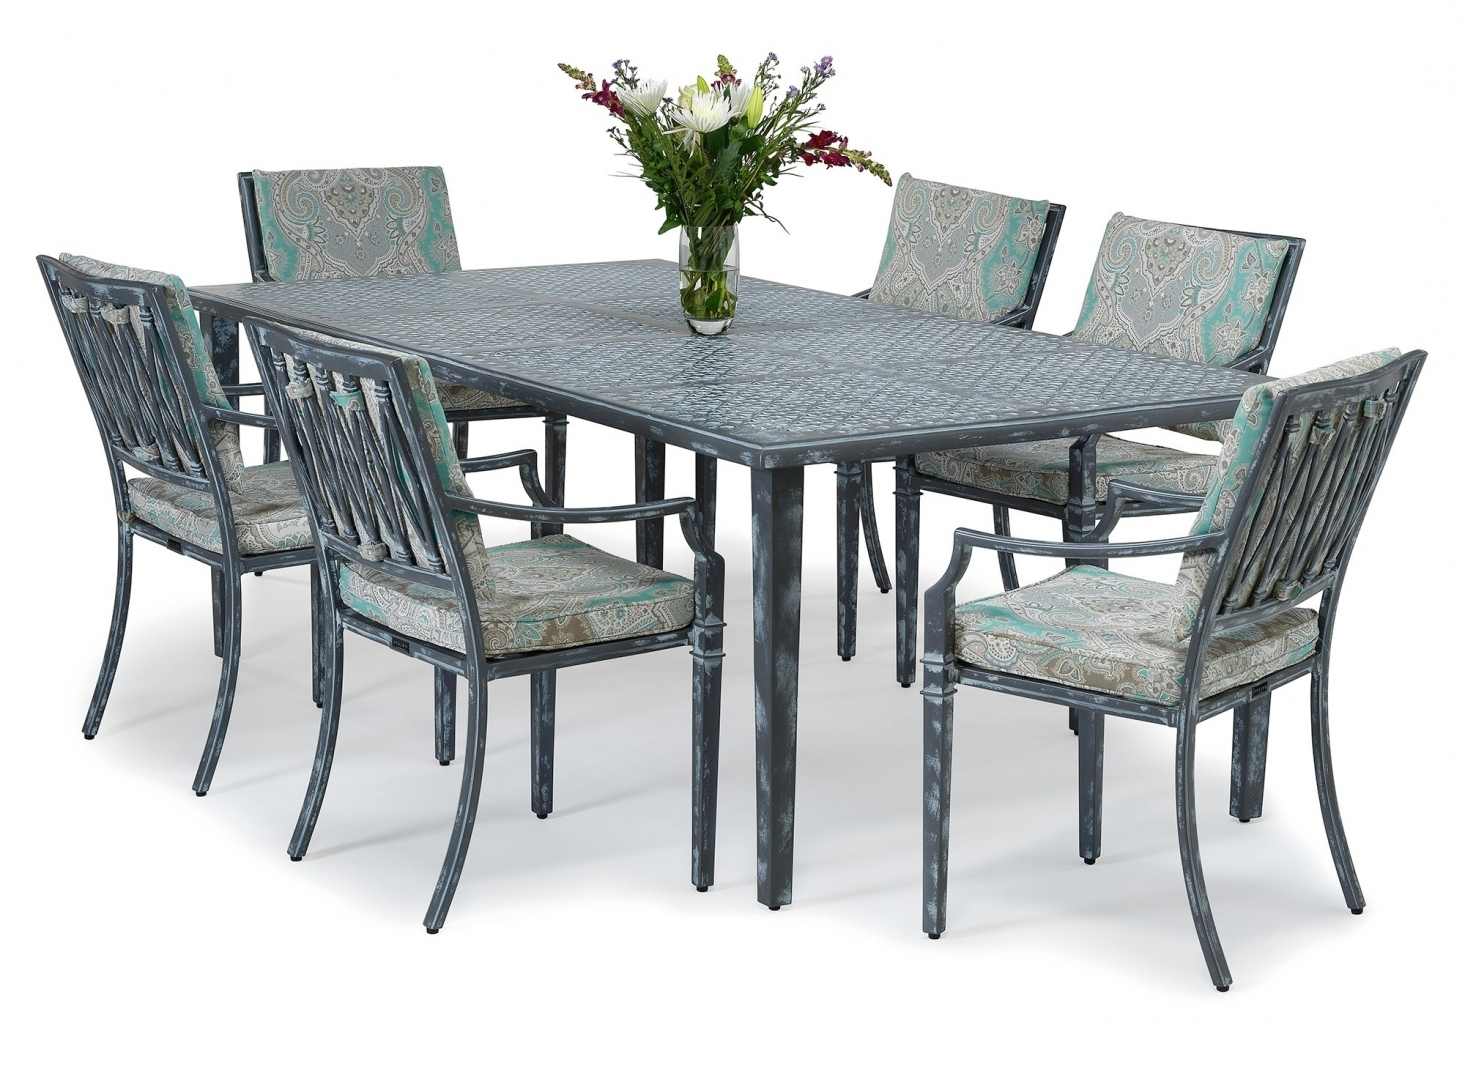 Current Sienna Metal Outdoor Dining Set, Metal Outdoor Furniture From For Outdoor Sienna Dining Tables (View 3 of 25)